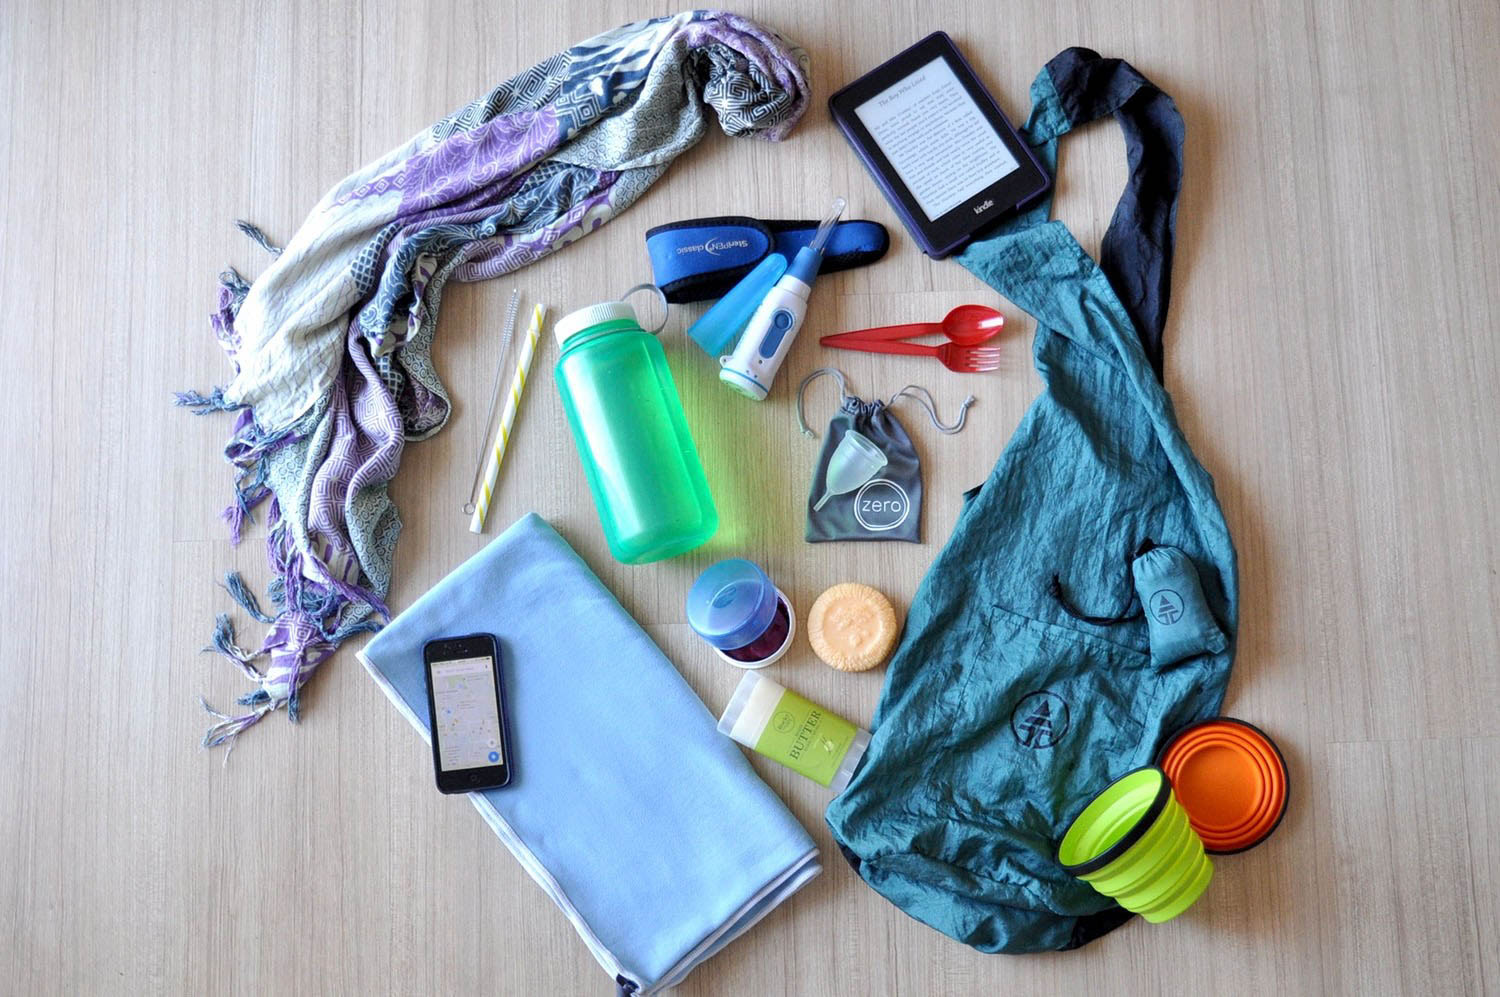 Eco friendly travel gear packing list